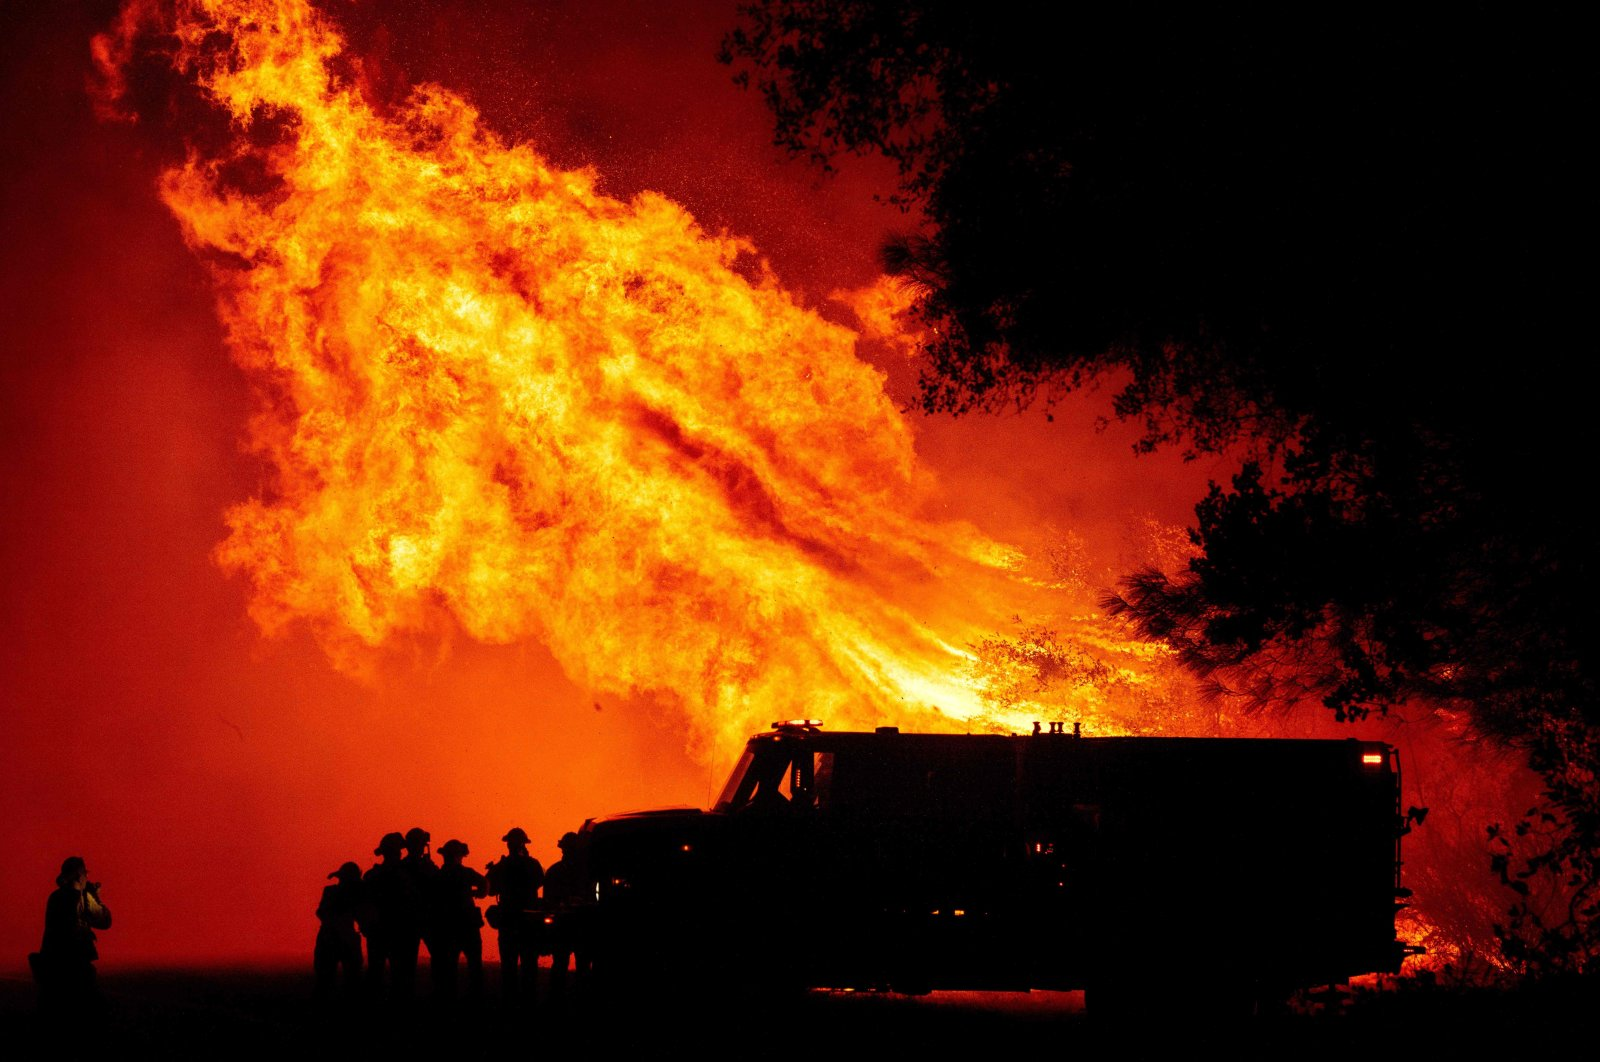 Butte county firefighters watch as flames tower over their truck during the Bear fire in Oroville, California, Sept. 9, 2020. (AFP)